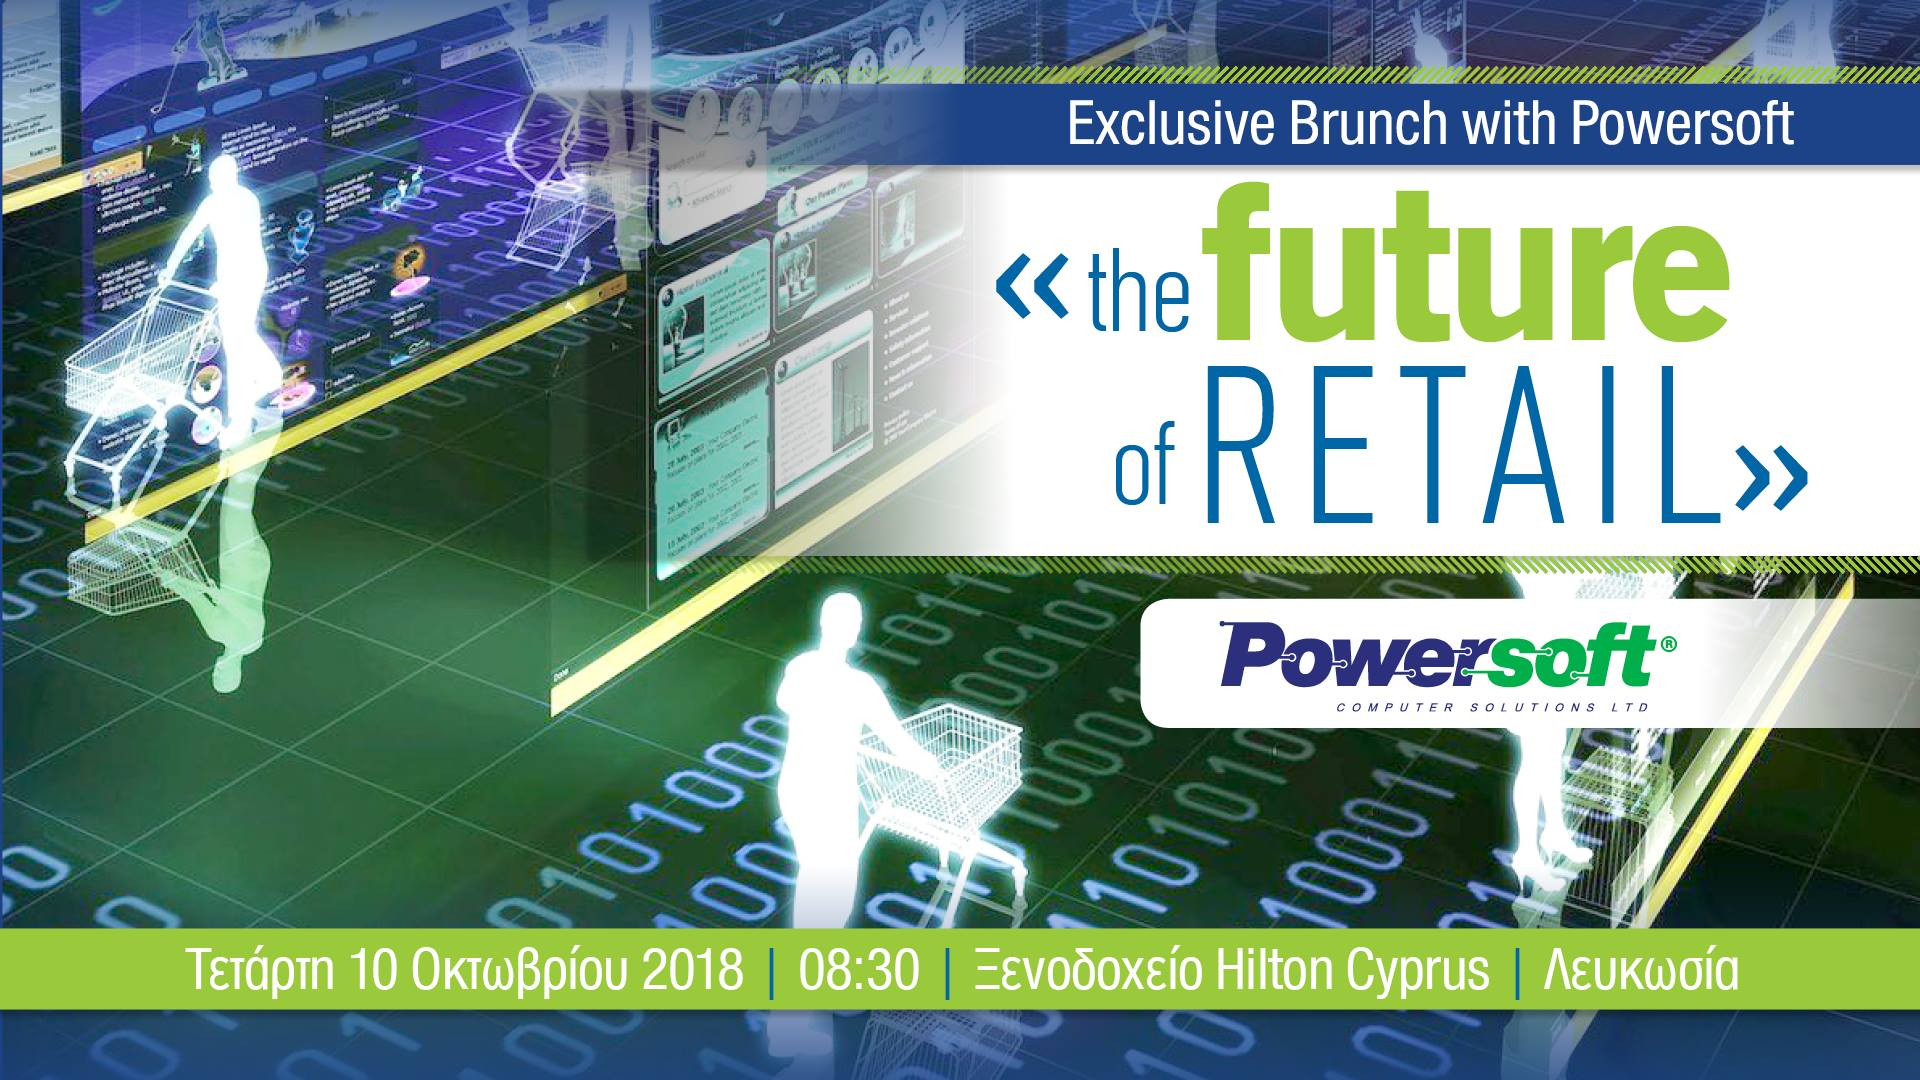 Exclusive Brunch with Powersoft - The Future of Retail! cyprus cyprusinno event events